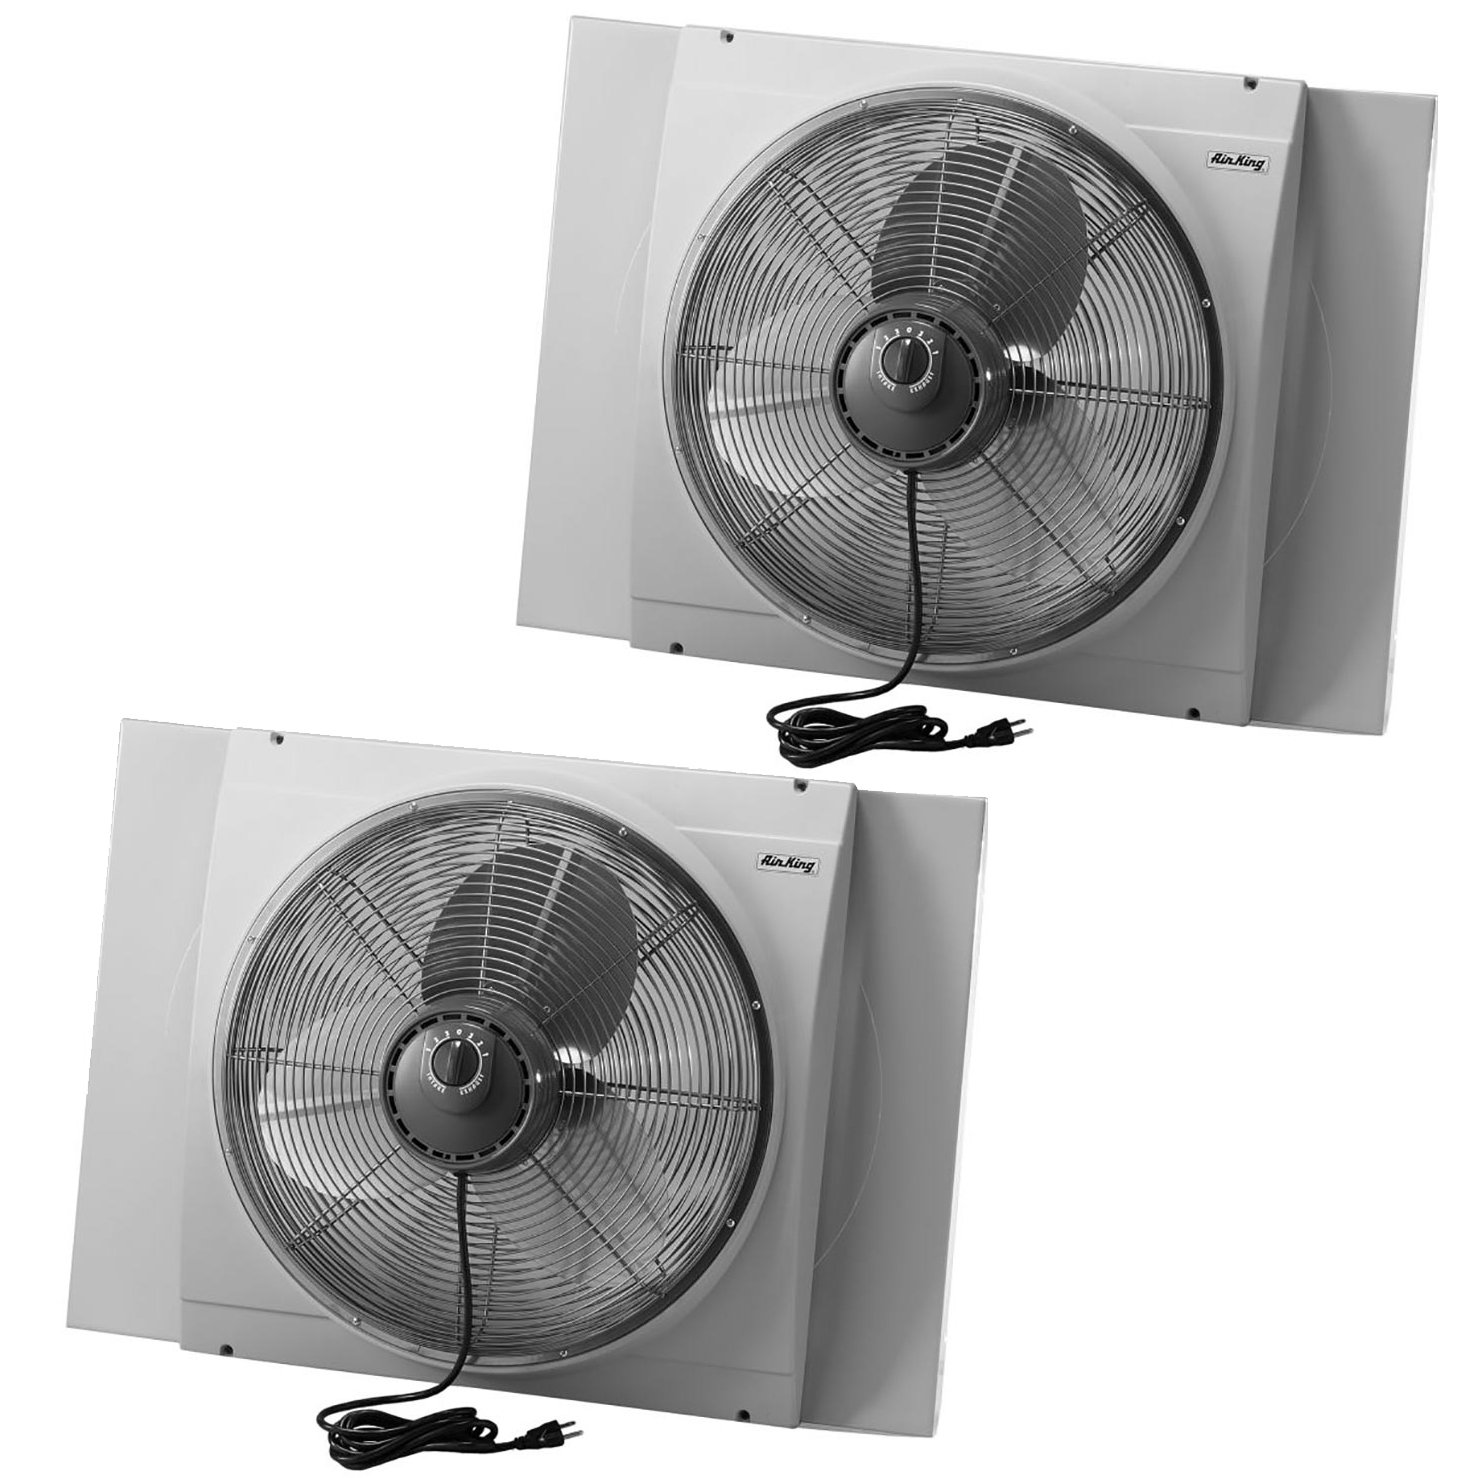 Air King 20 Inch Blades Whole House 120V 3 Speed Window Fan, Gray (2 Pack)